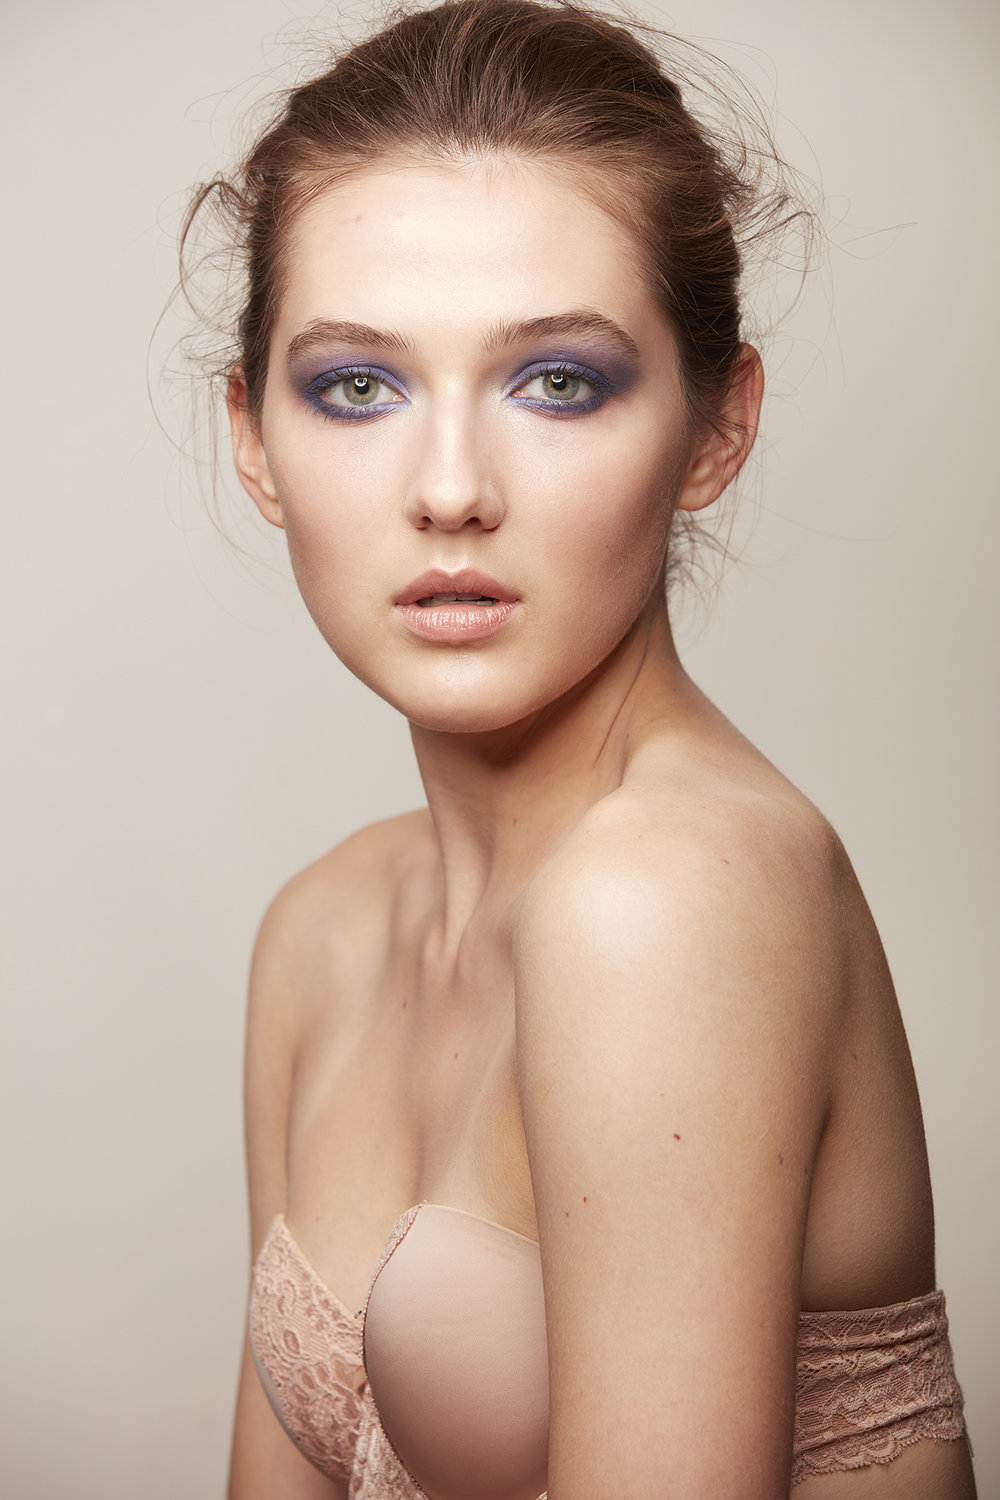 woman with hair up wearing periwinkle eye shadow